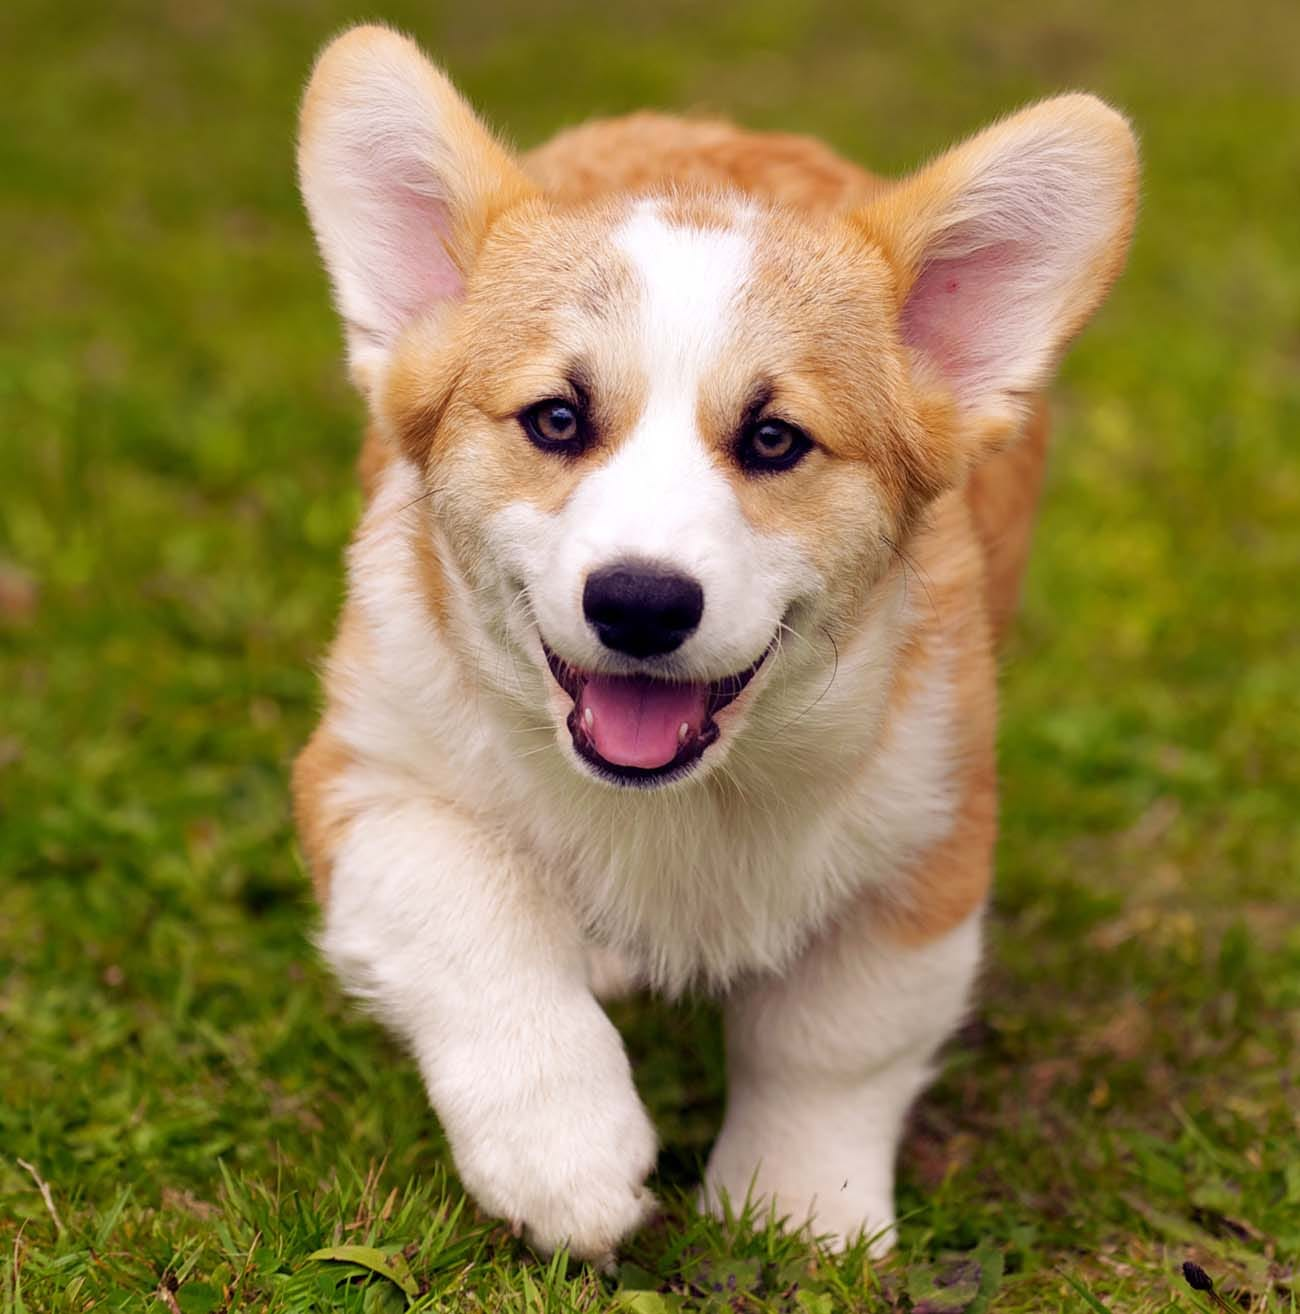 What should you name your new corgi dog